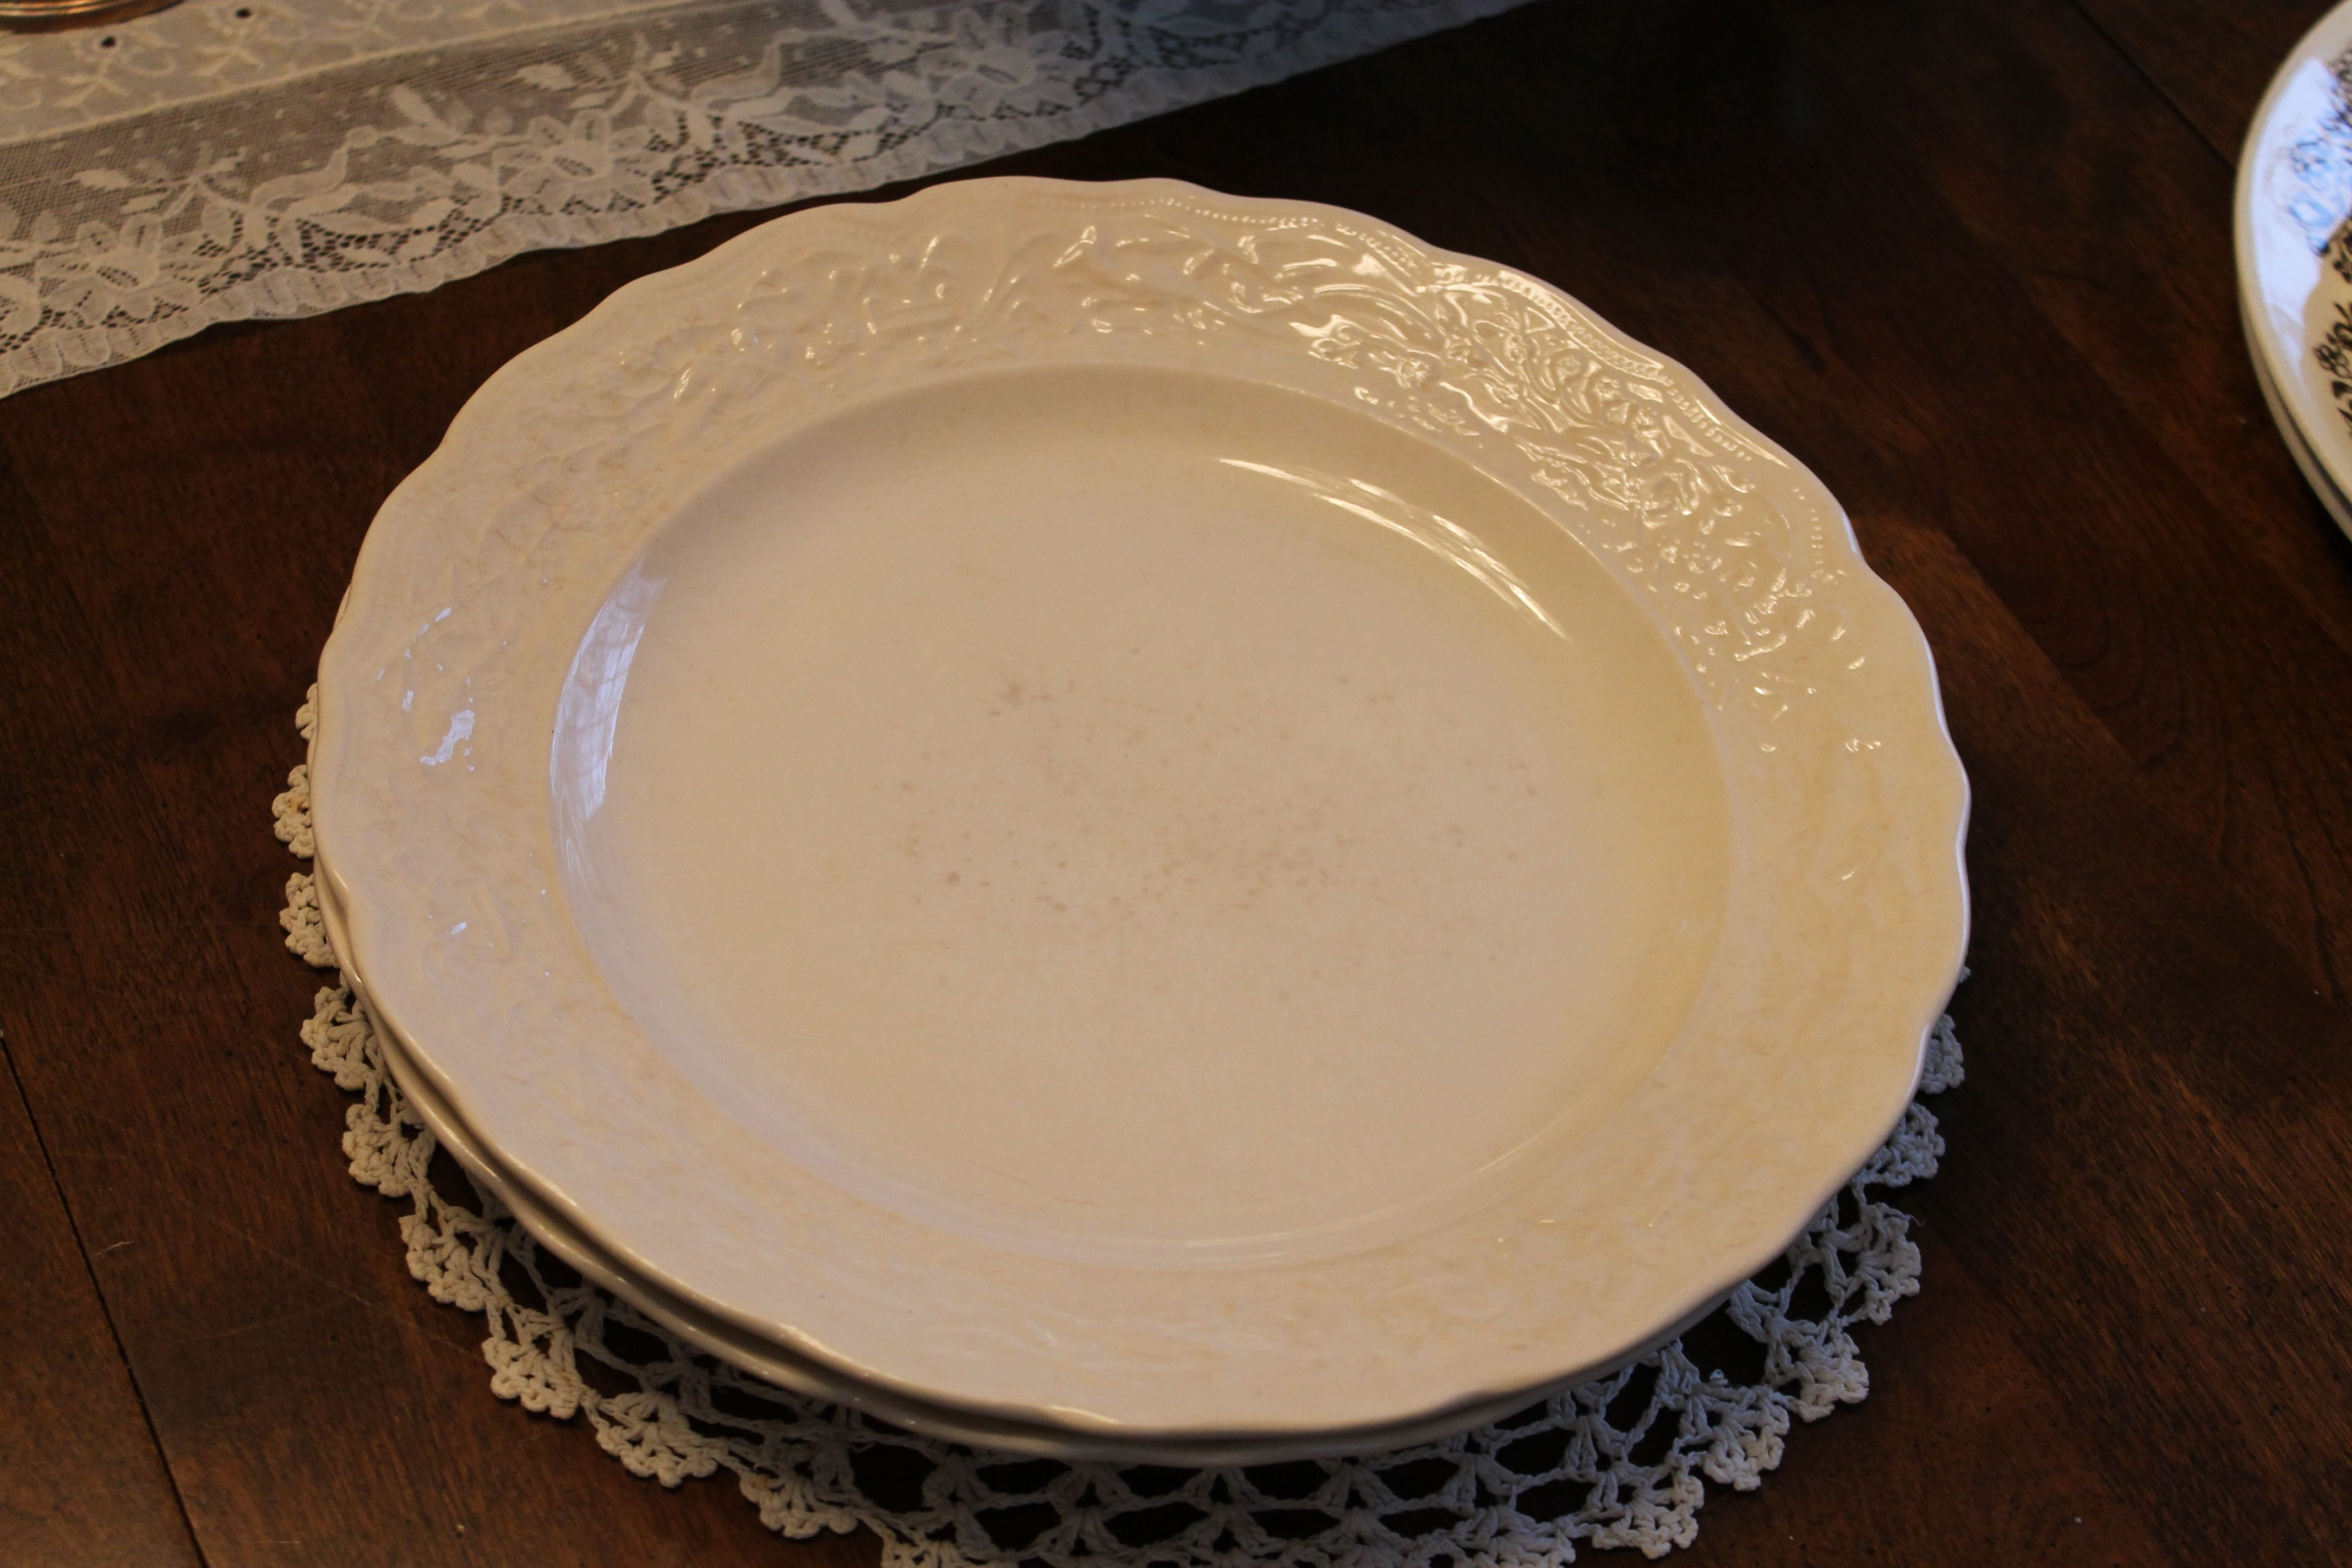 Cream Colored Vintage 10 Inch Dinner Plate 2 Available Southern Vintage Classic China Collection Rentals Vintage Rentals Vintage China Classic Collection